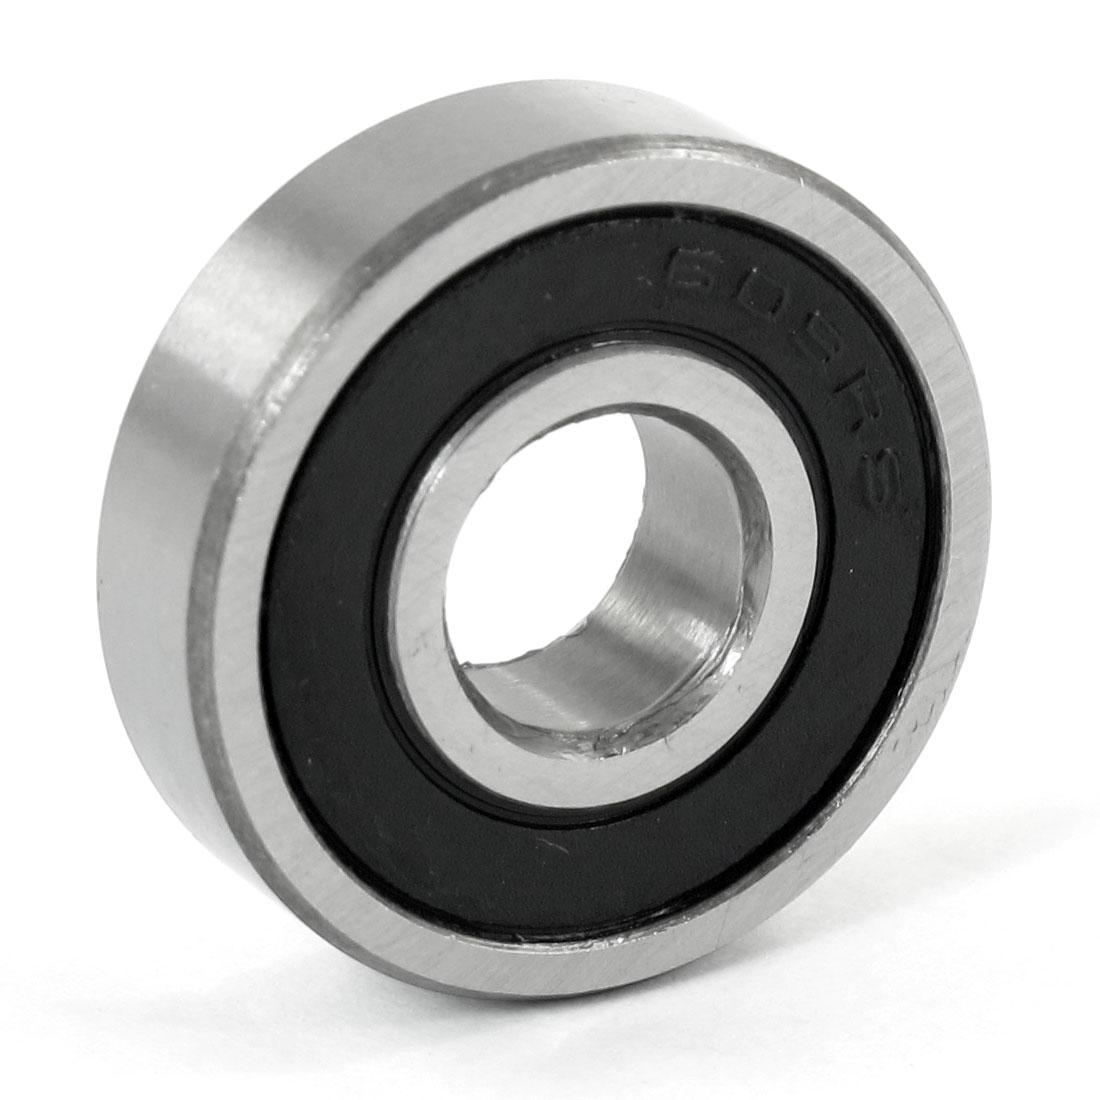 24mm x 9mm x 7mm Carbon Steel 6200RS Shielded Deep Groove Ball Bearing Black